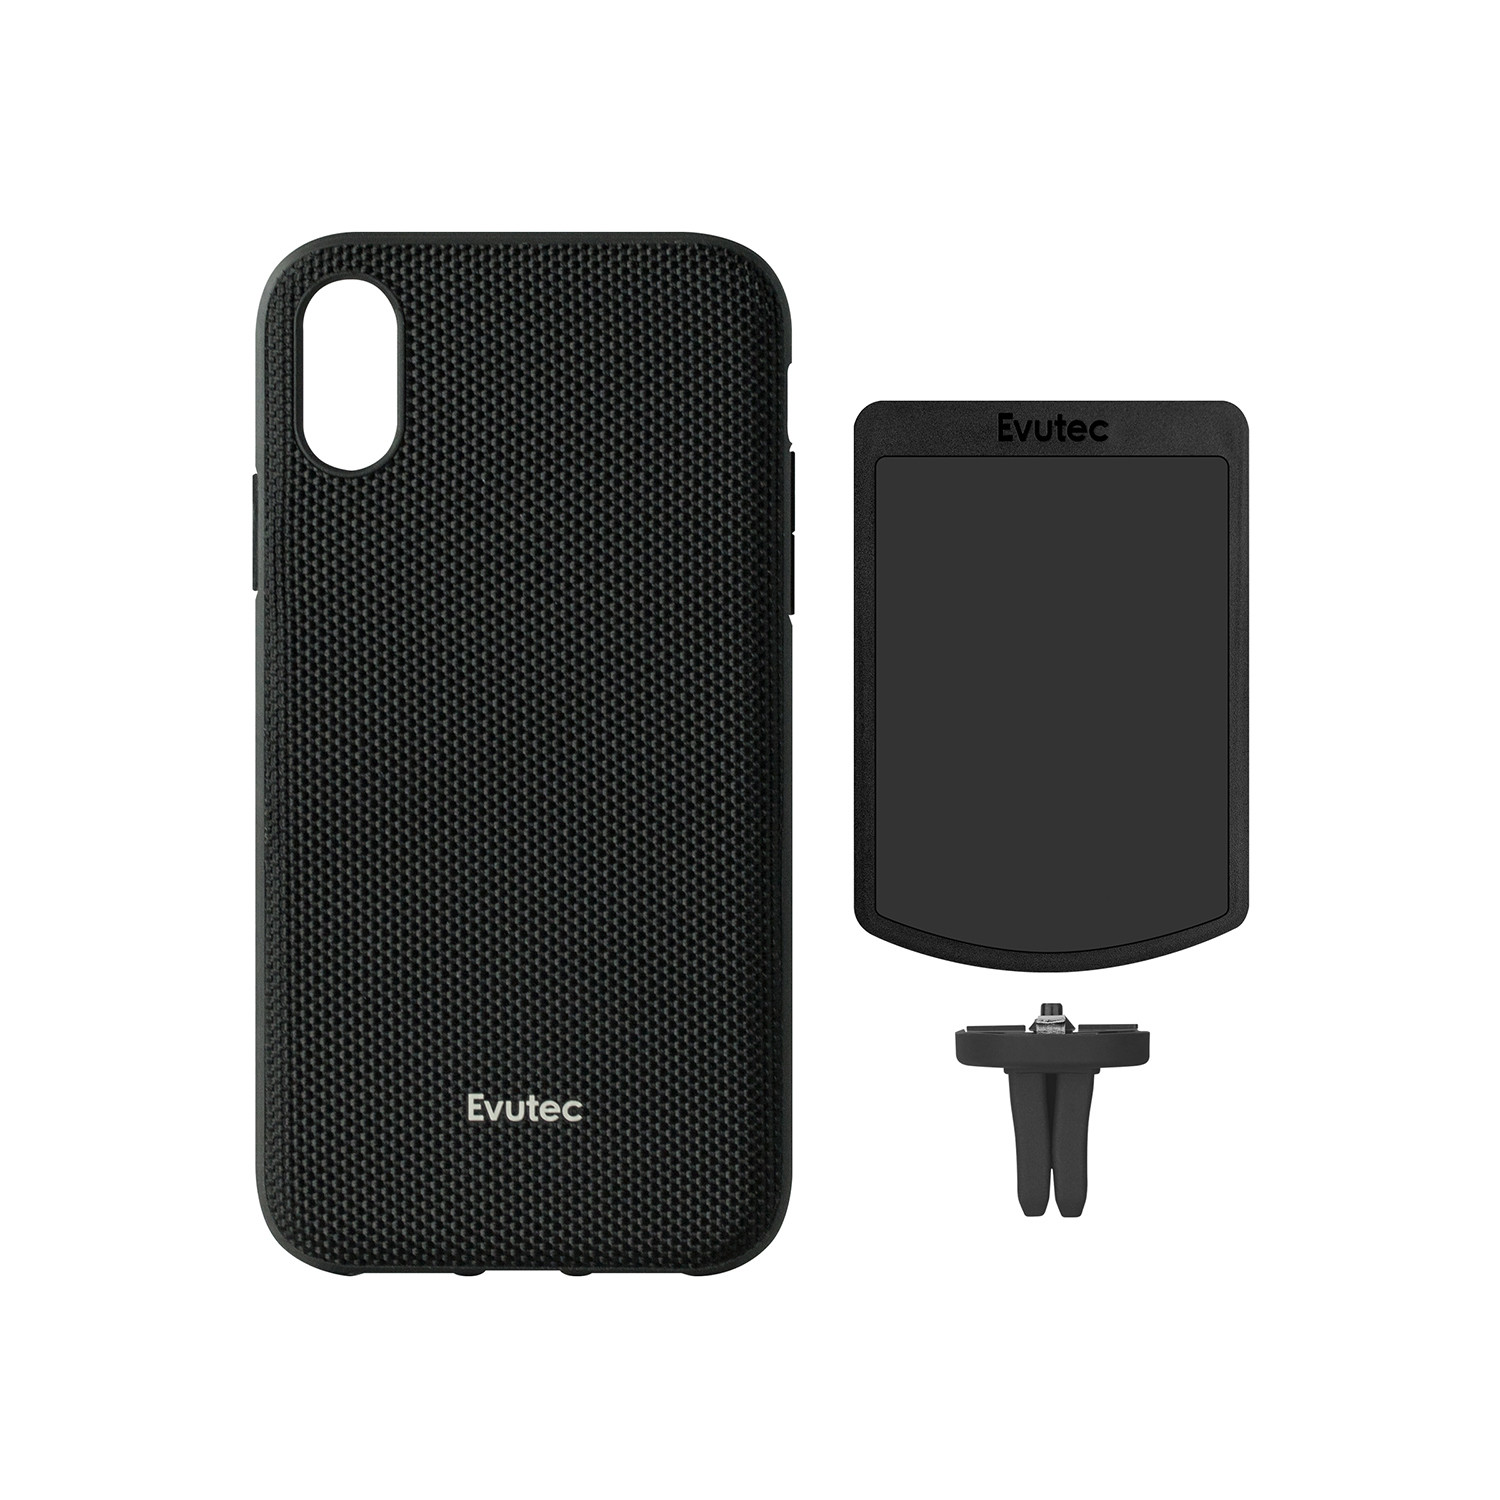 sports shoes 526d1 b4382 iPhone Ballistic Nylon Case + Vent Mount // XR - EvuTec - Touch of ...